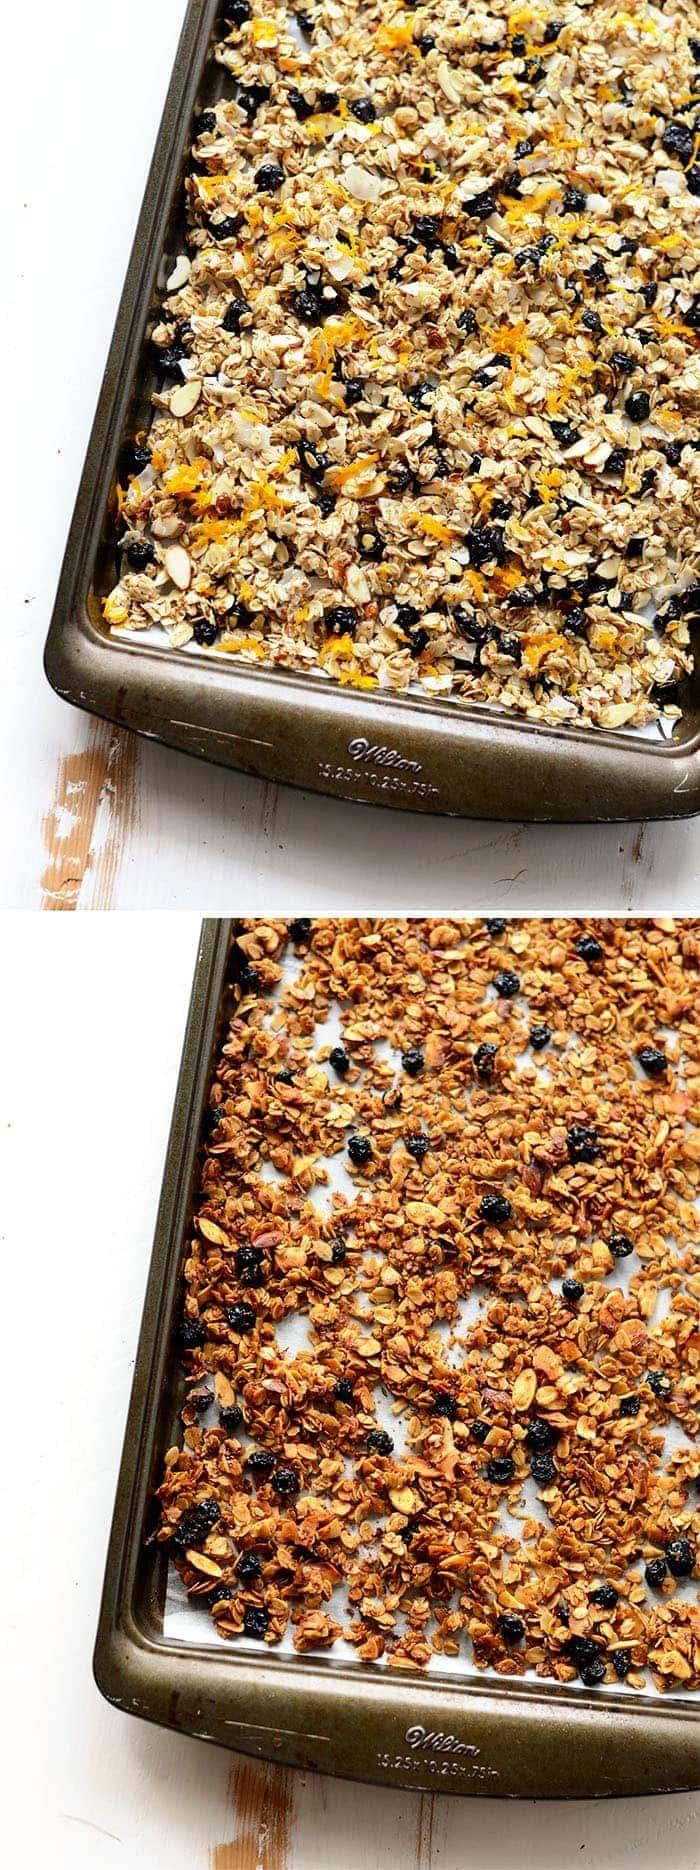 Before and after baking granola